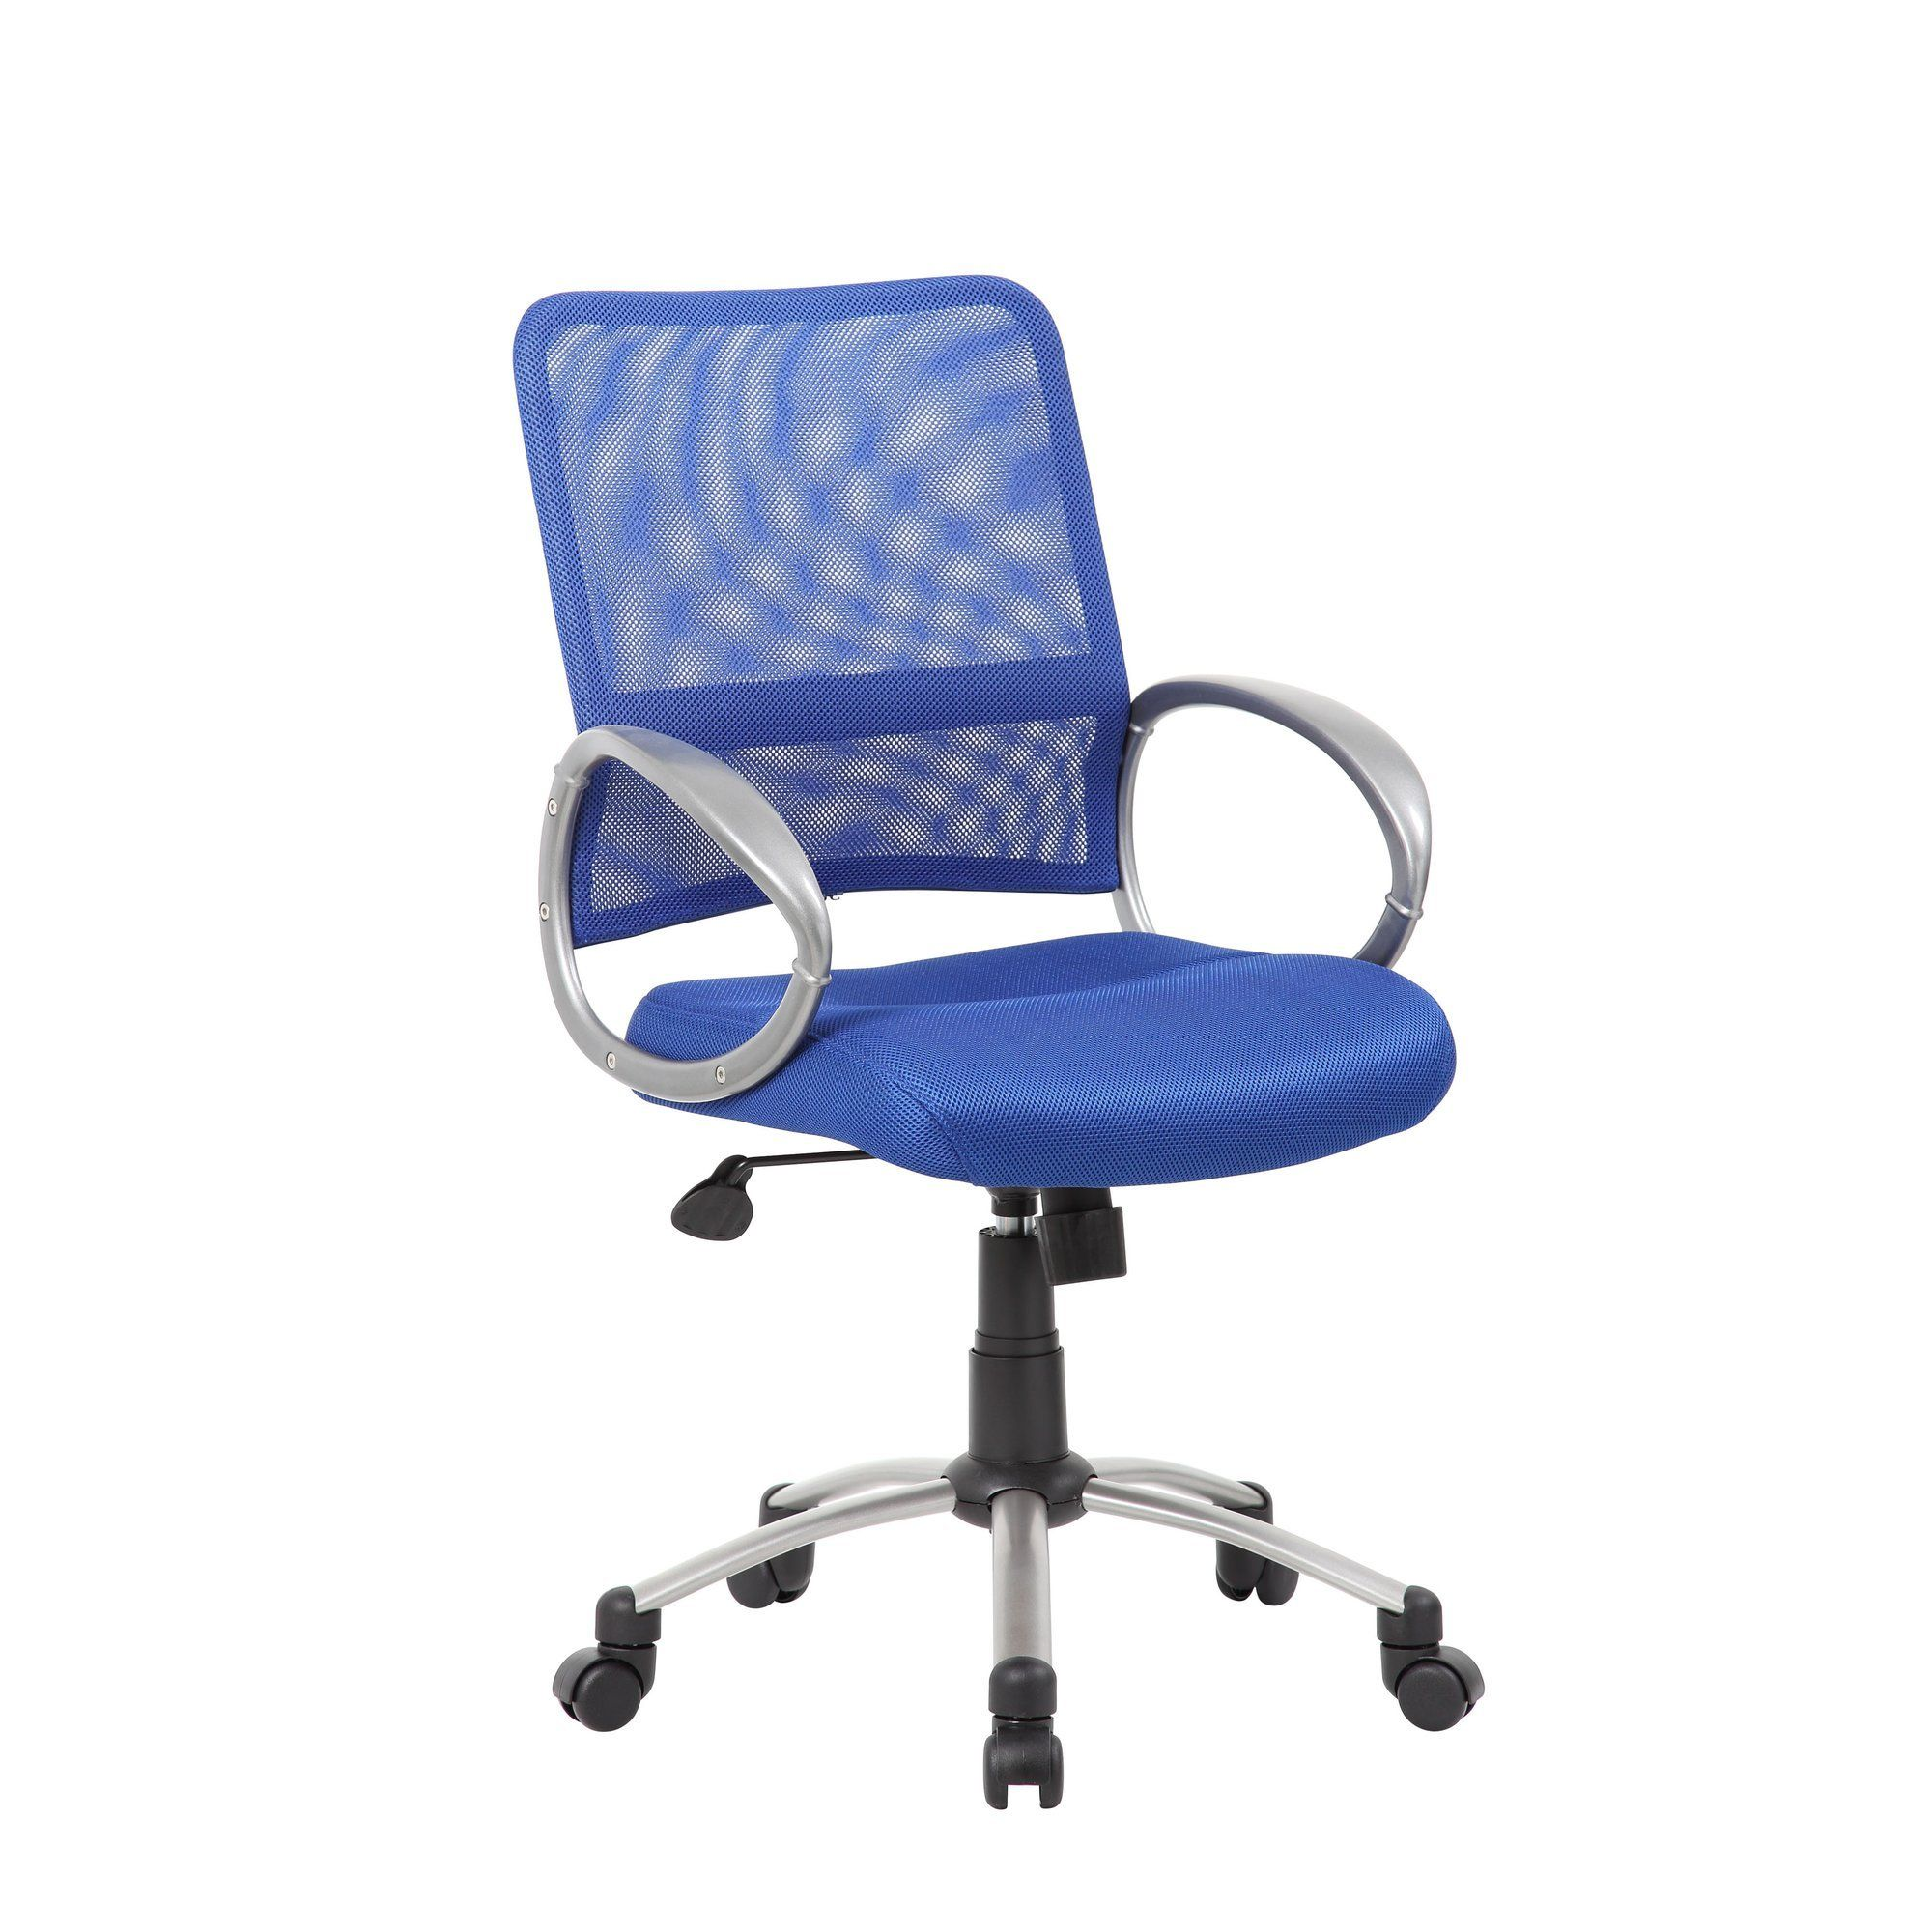 teen office chairs. Tenafly Mesh Desk Chair Teen Office Chairs A